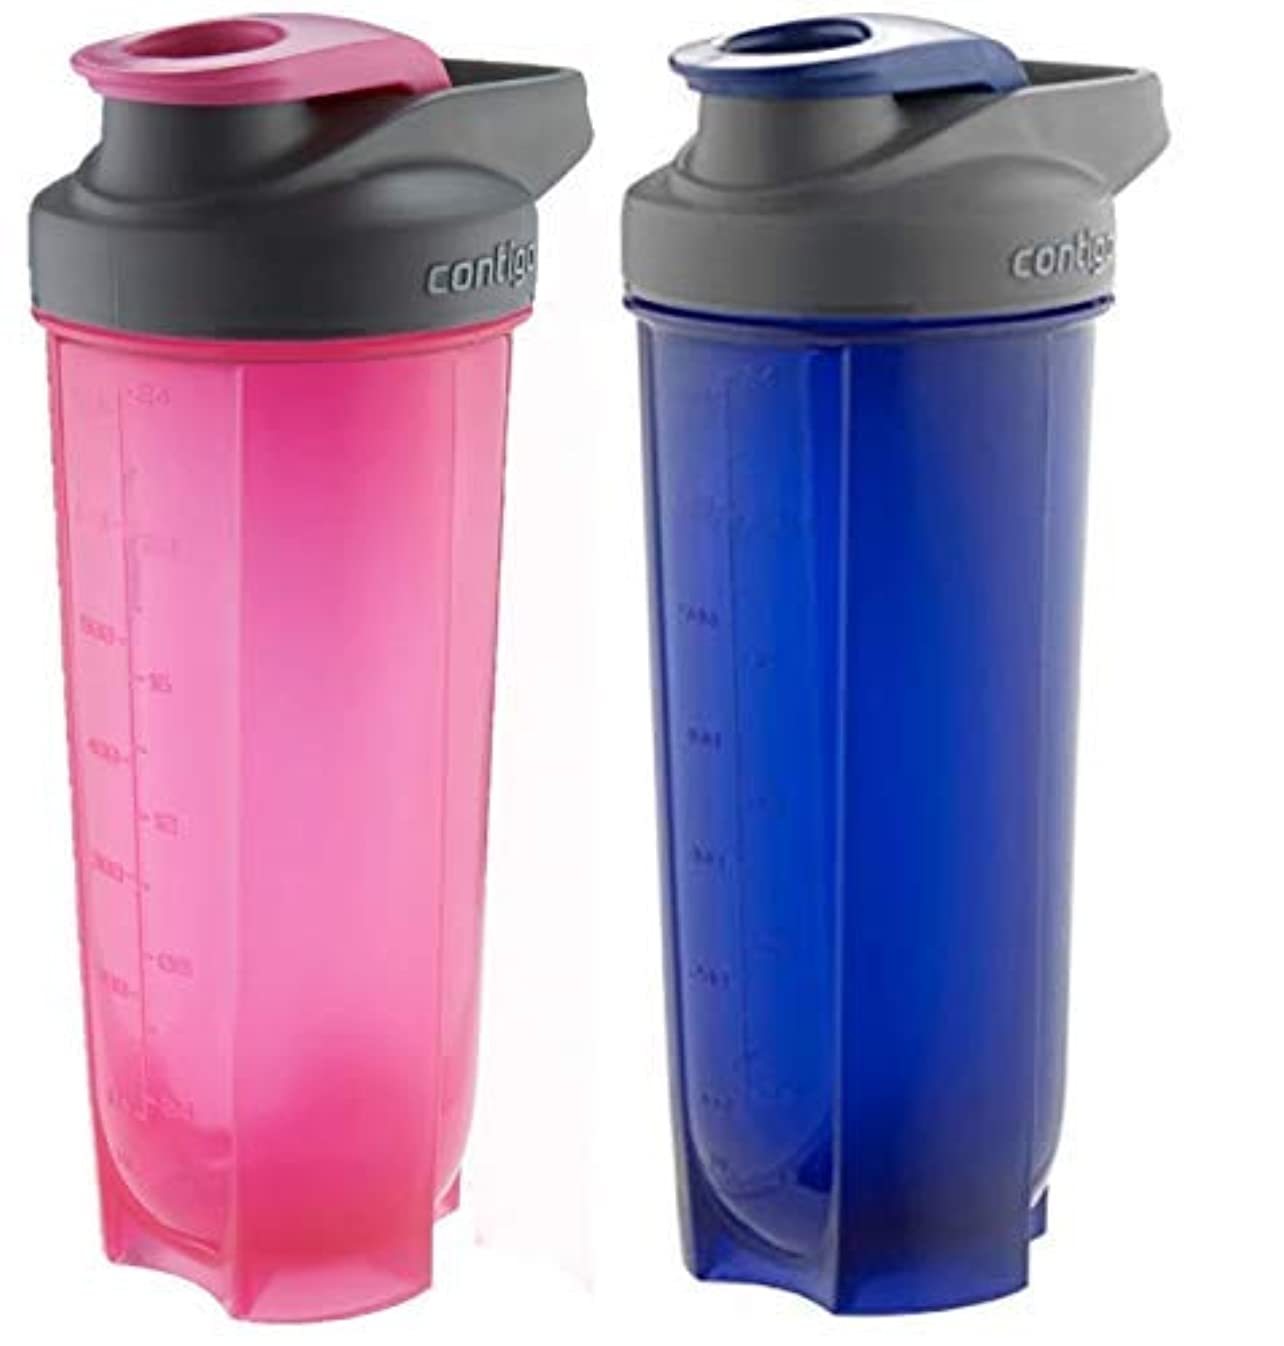 仕立て屋支給規則性Contigo Shake & Go Fit Bottles, 28 Oz / 828 ml Each, Two Pack, Pink & Blue, His & Hers Shaker Bottles [並行輸入品]